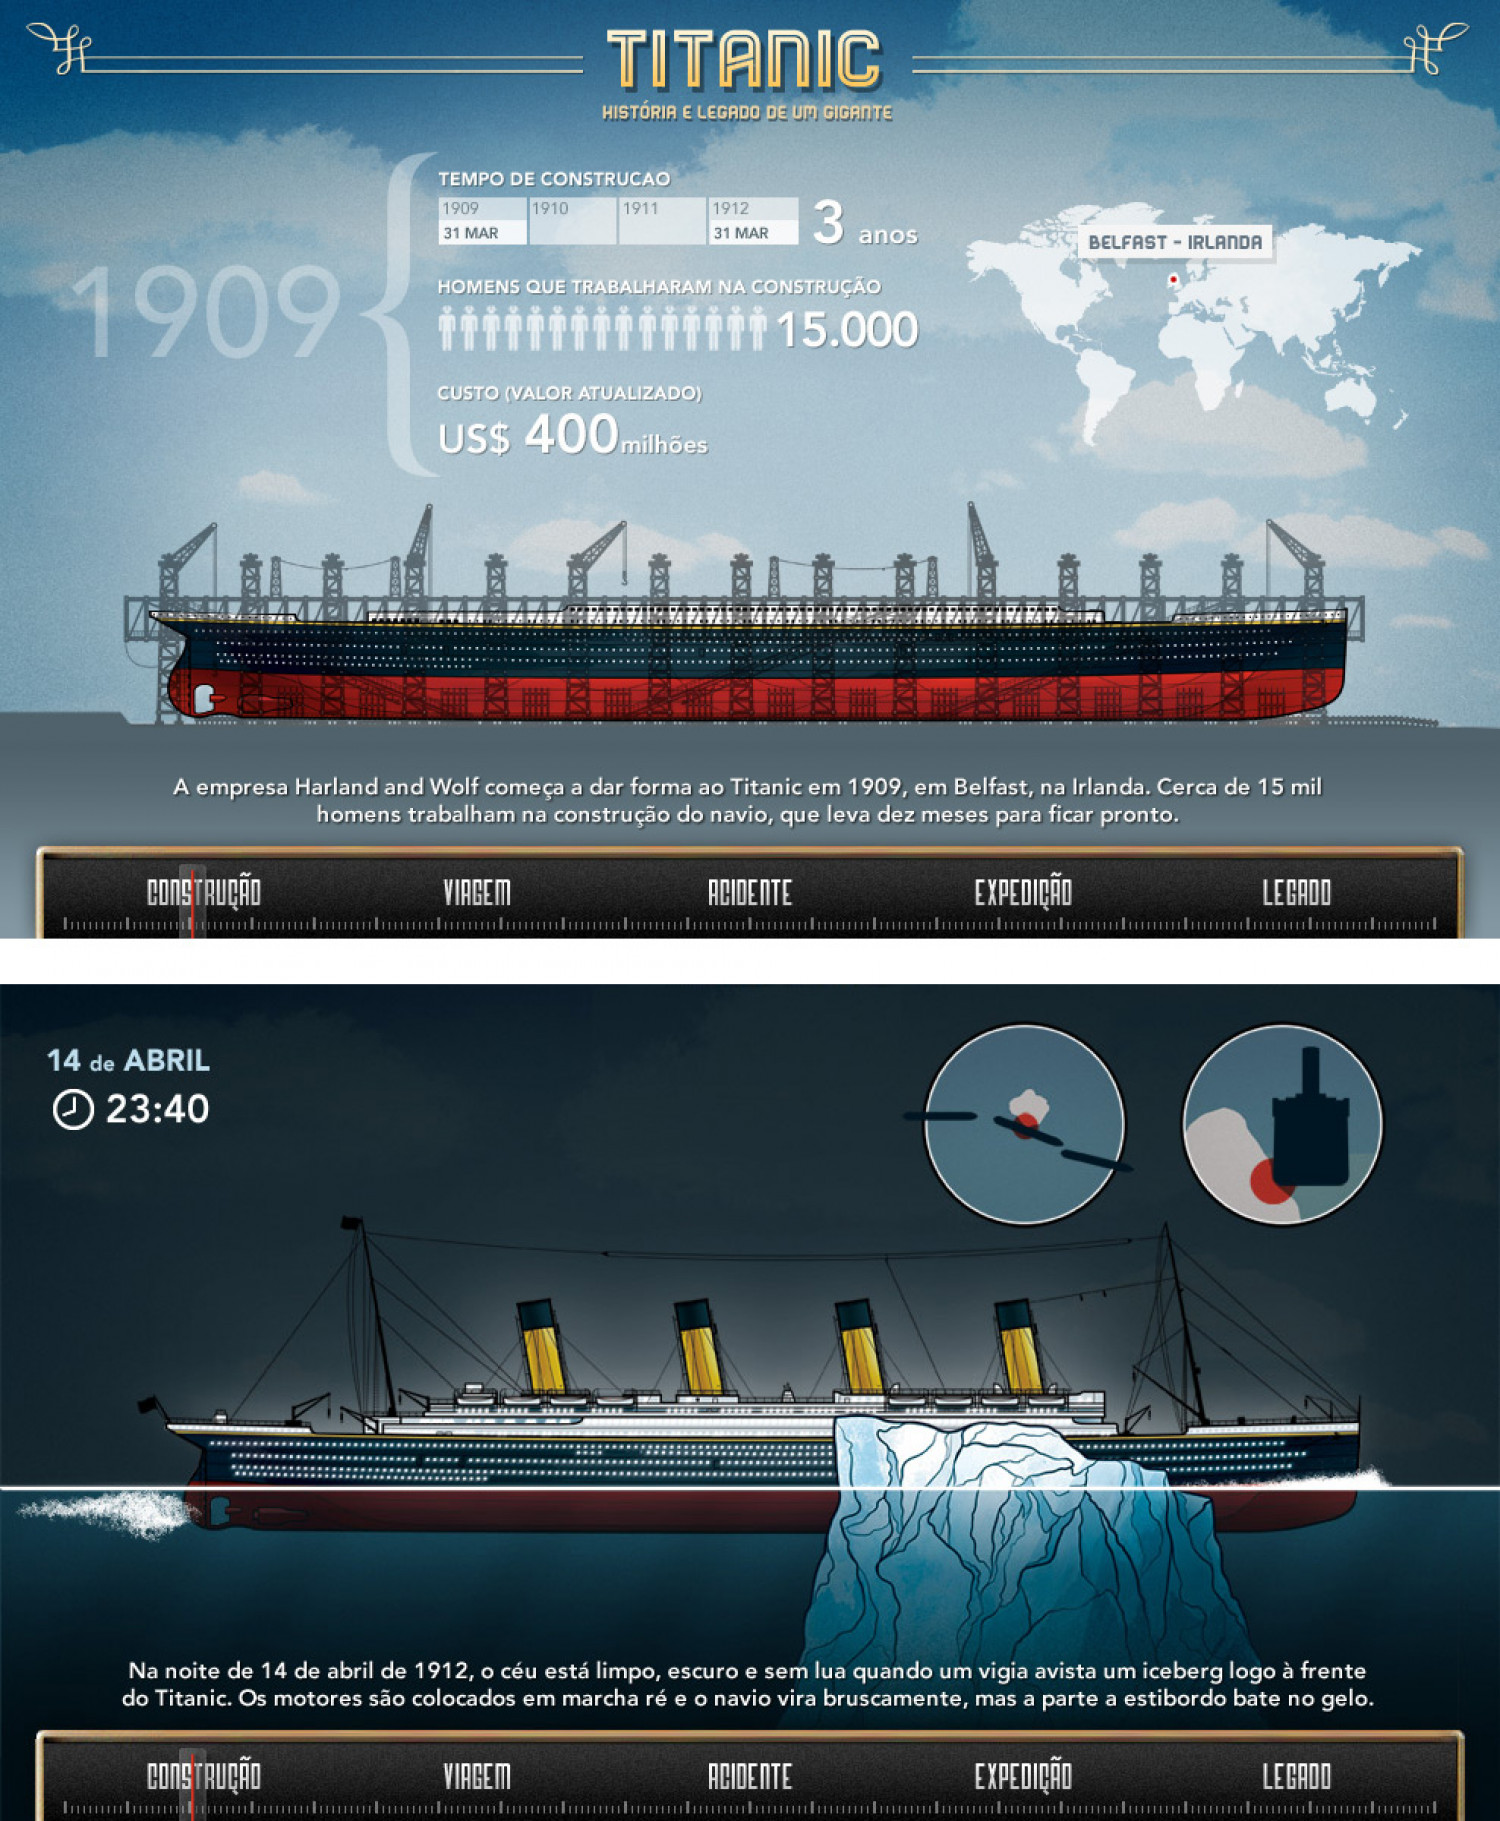 RMS Titanic 100 Years after Infographic